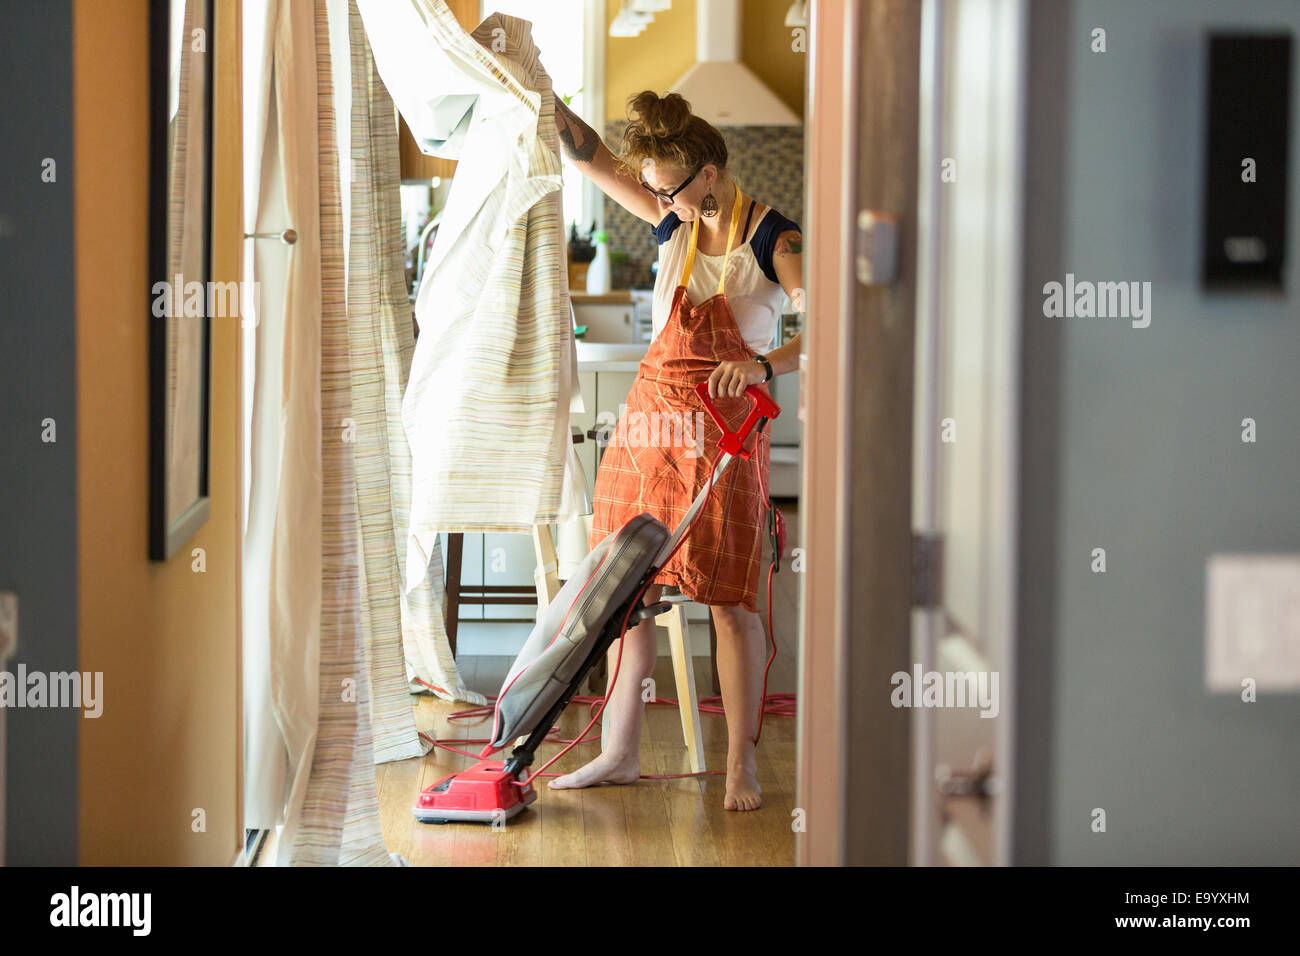 Young woman vacuuming with green cleaning products - Stock Image